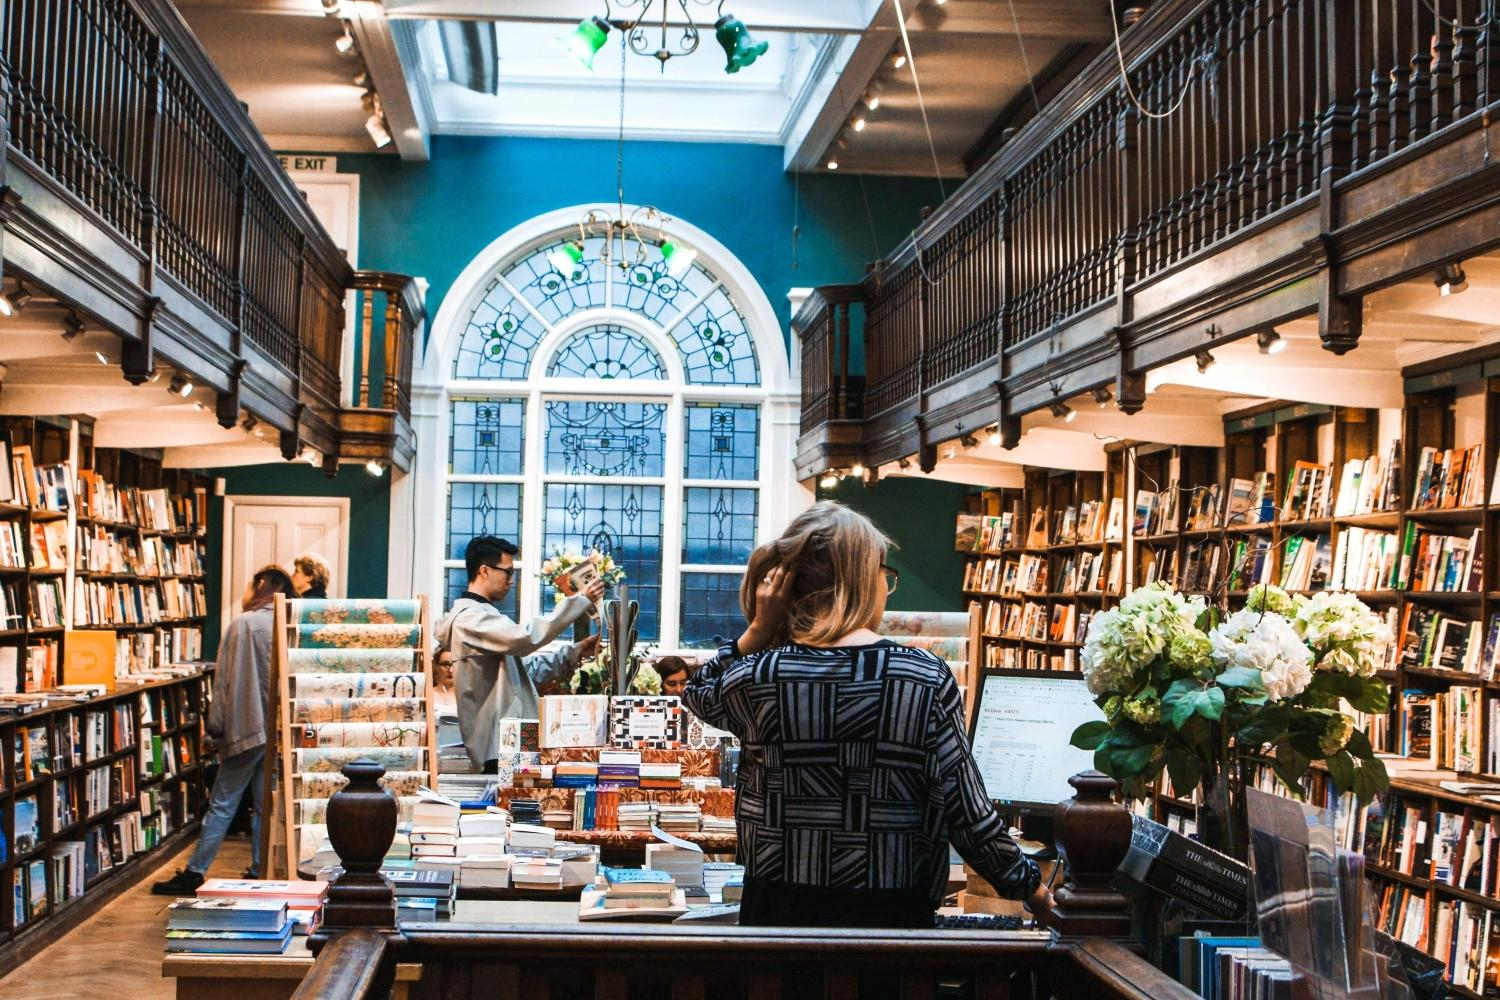 daunt-books-london-unsplash